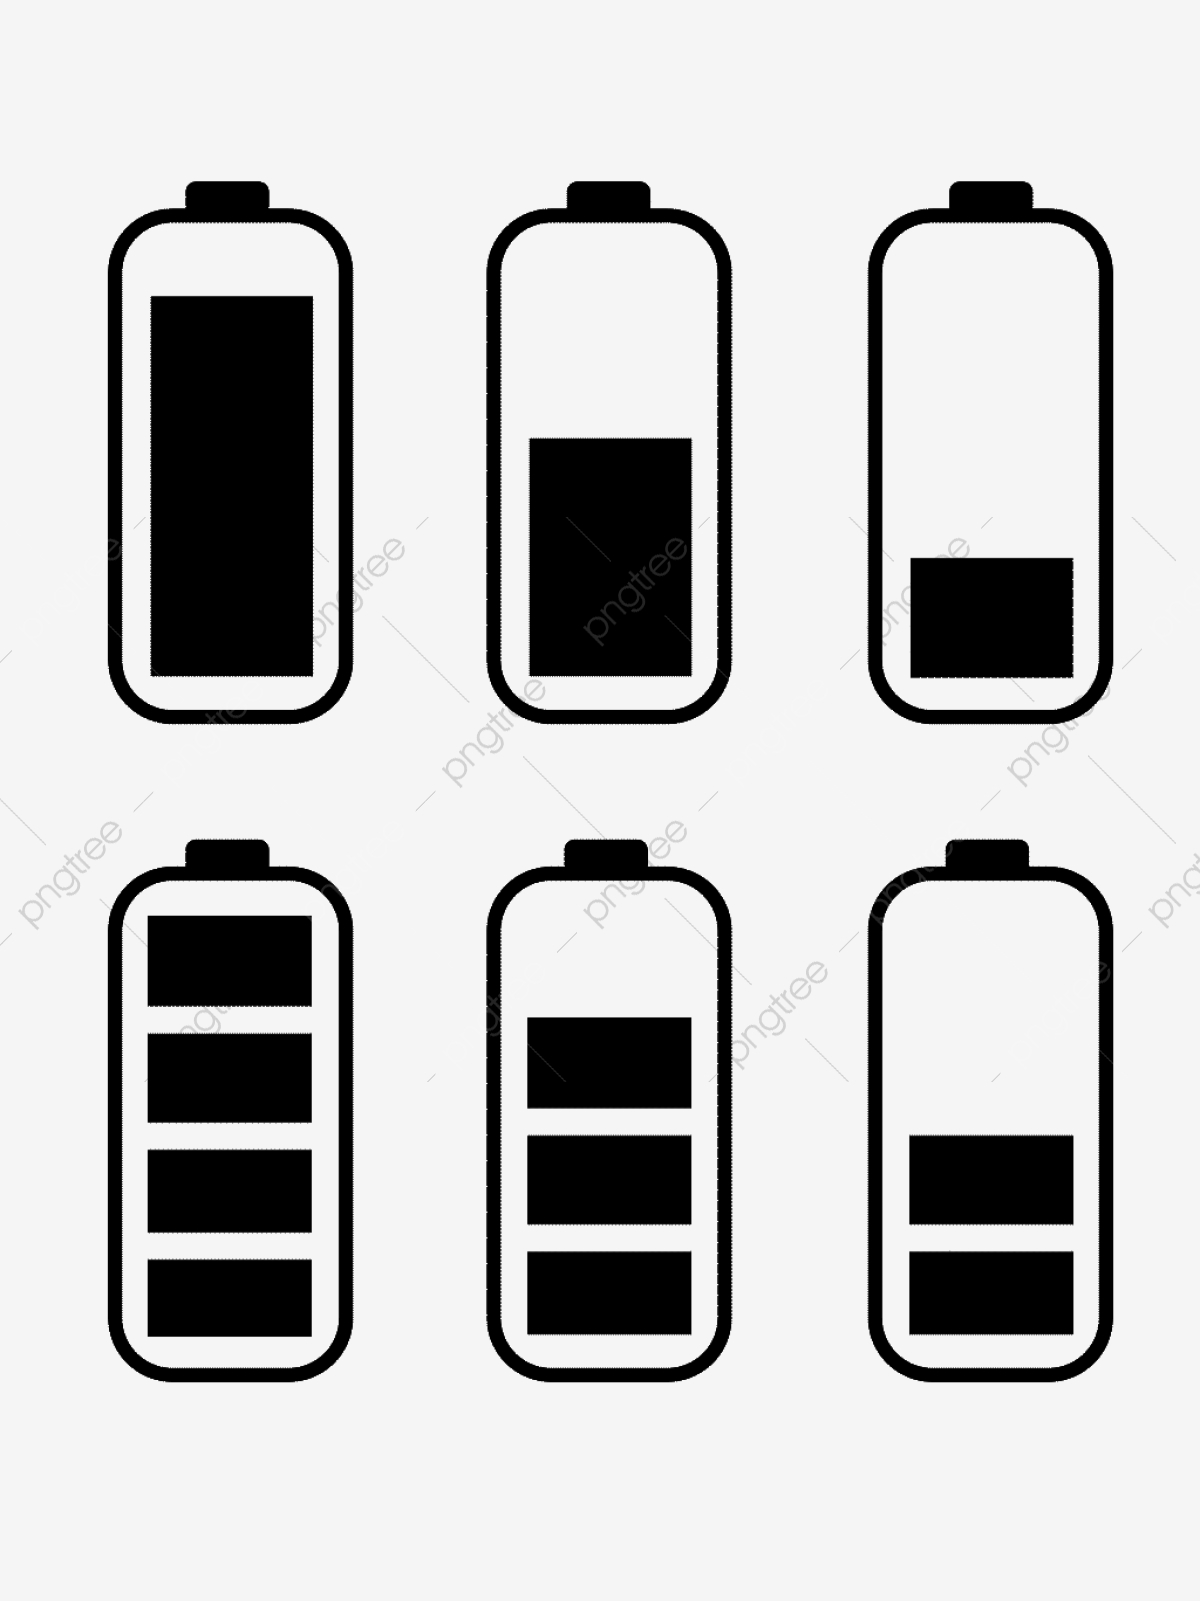 Battery Png Vector Psd And Clipart With Transparent Background For Free Download Pngtree